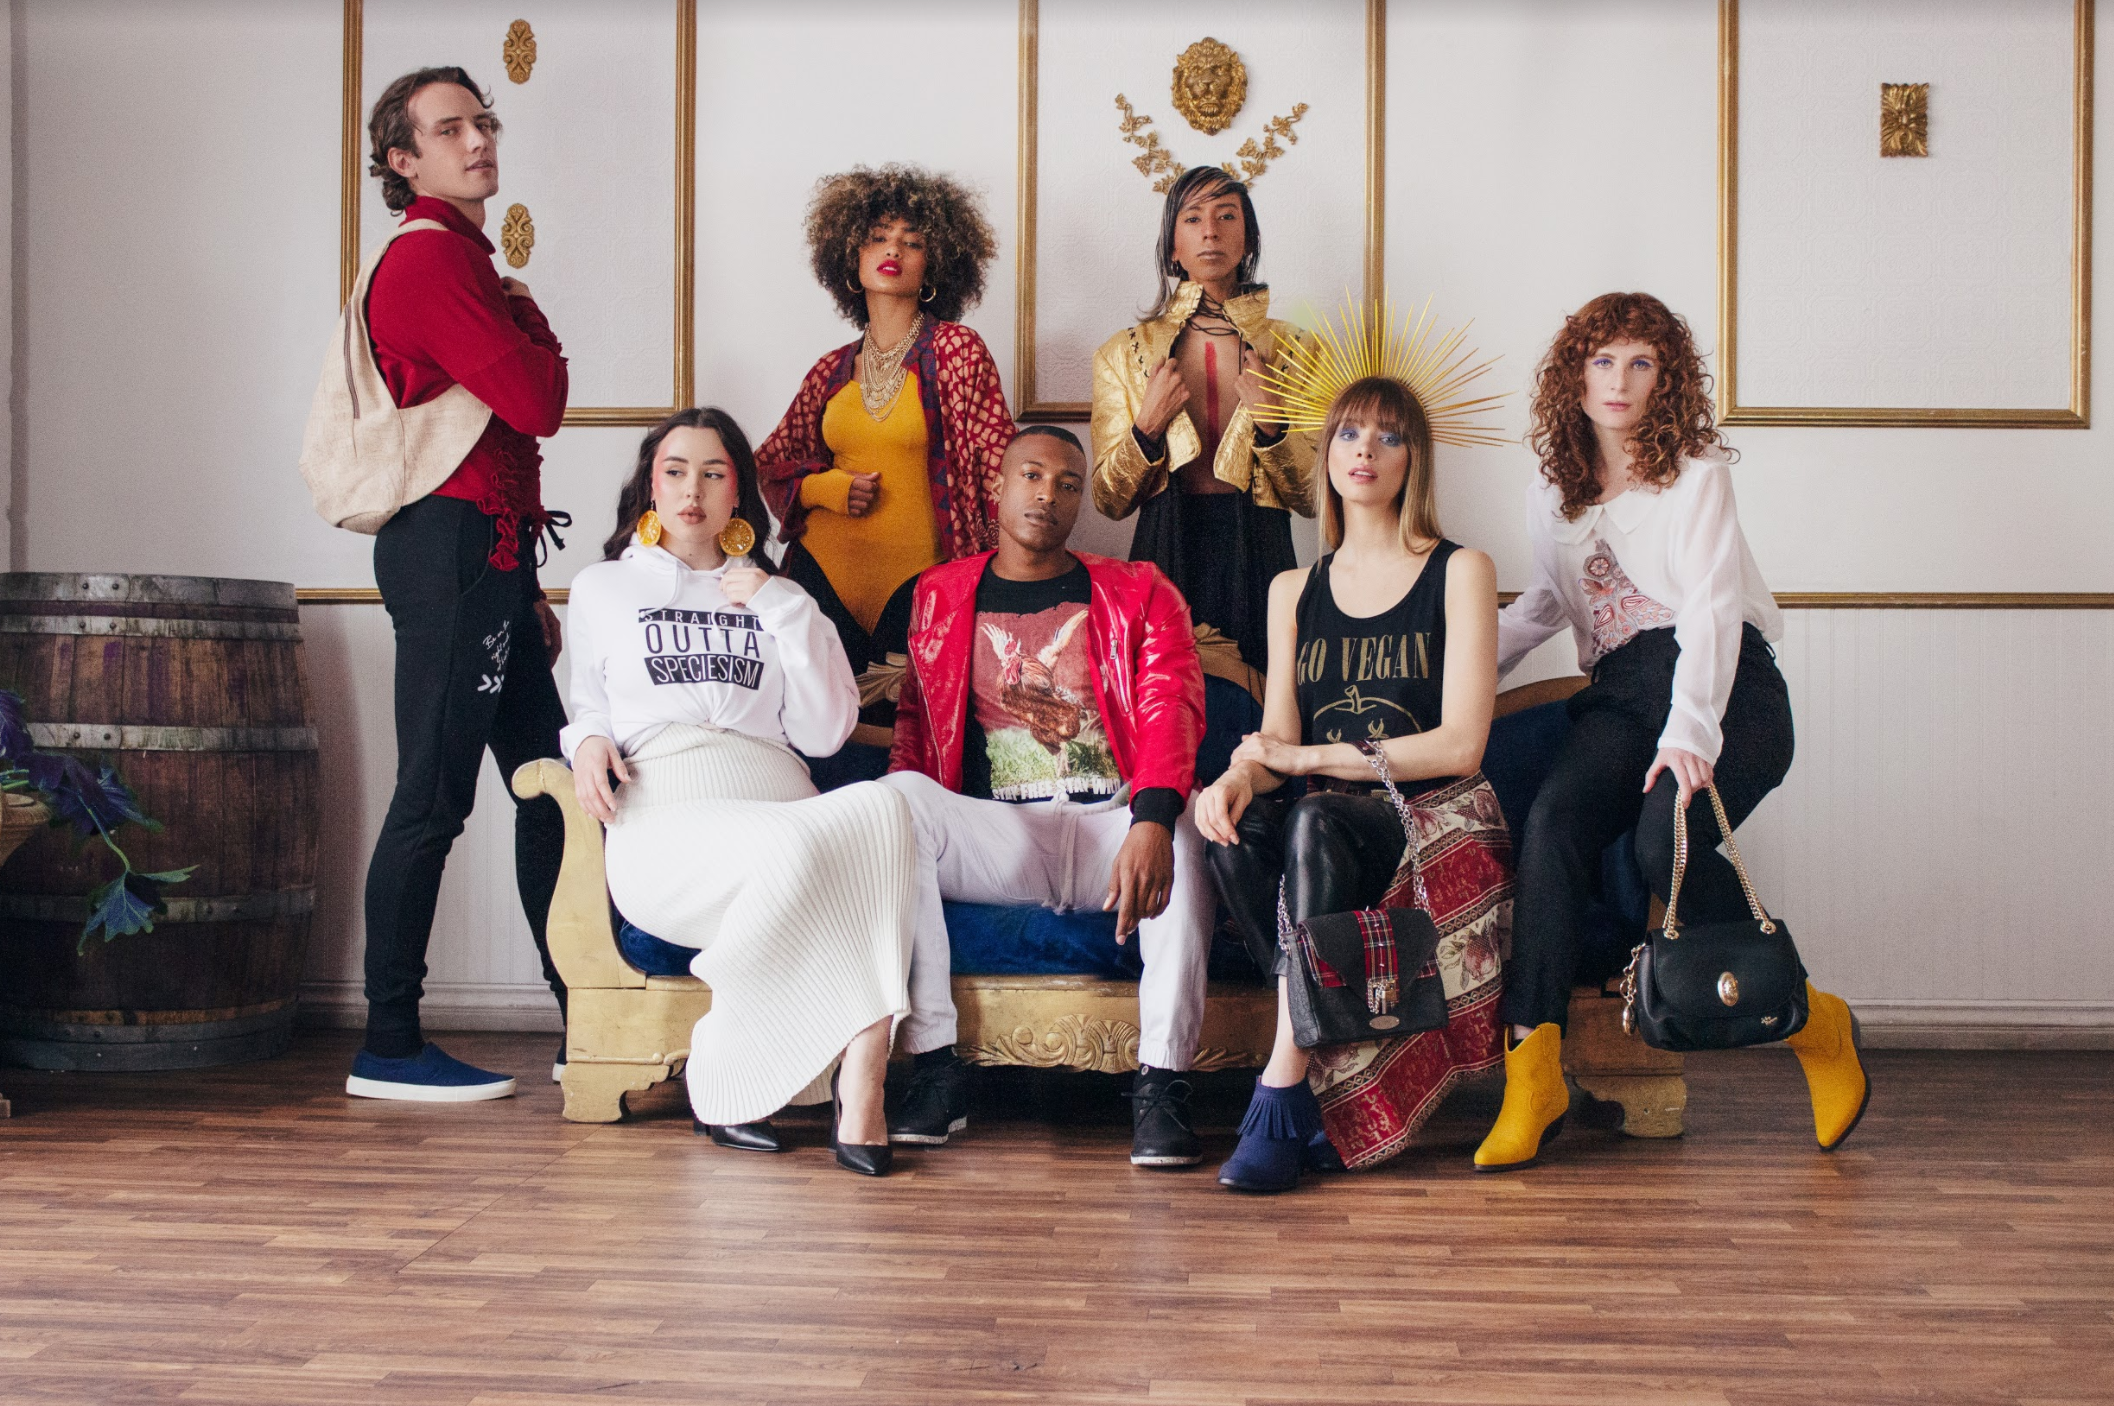 F.A.K.E Movement Debuts Collective Giveaway/Photoshoot to Support Small Businesses During COVID-19